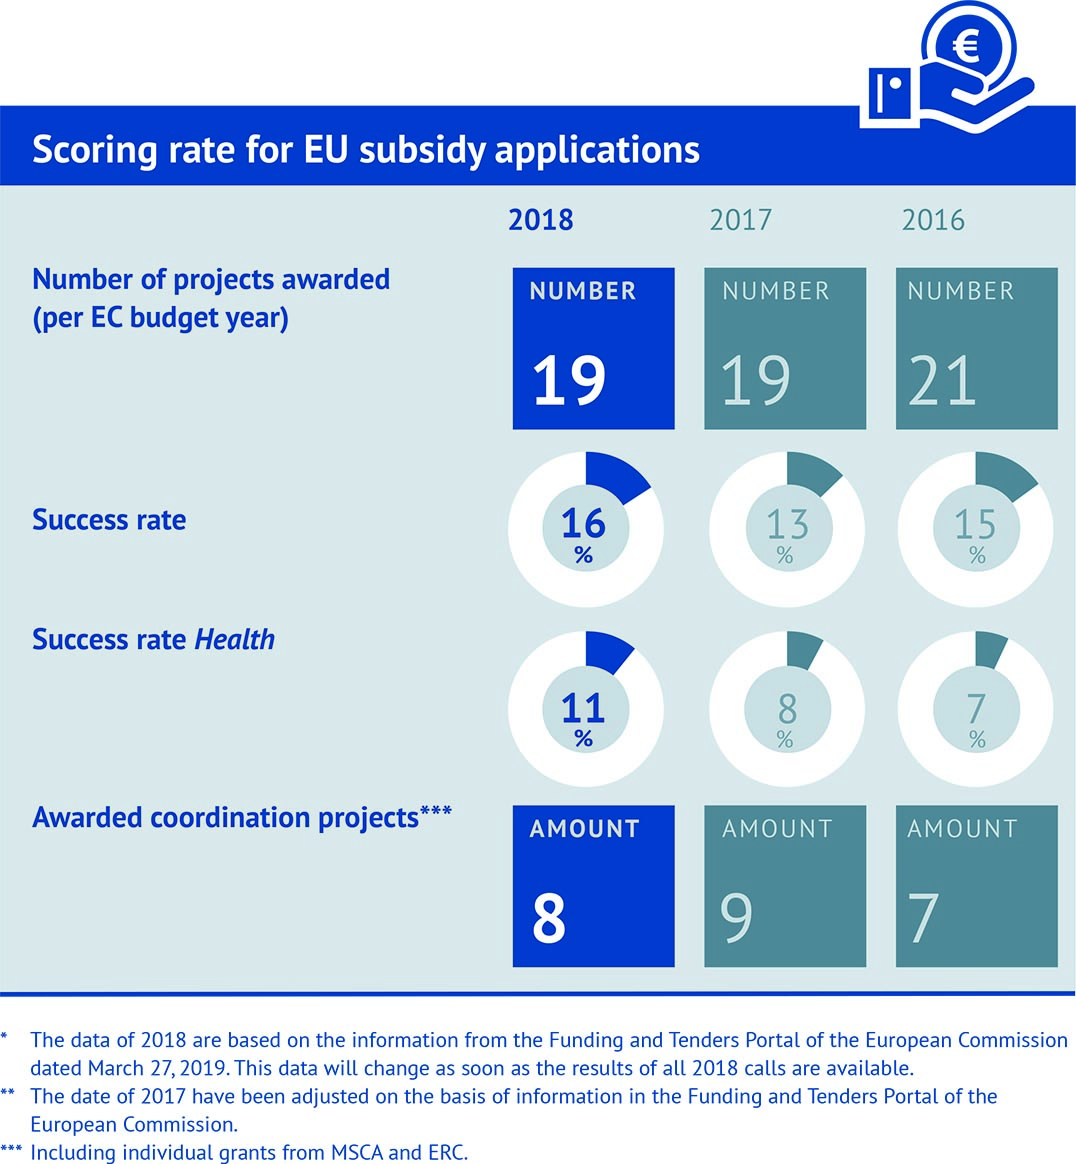 Scoring rate for EU subsidy applications